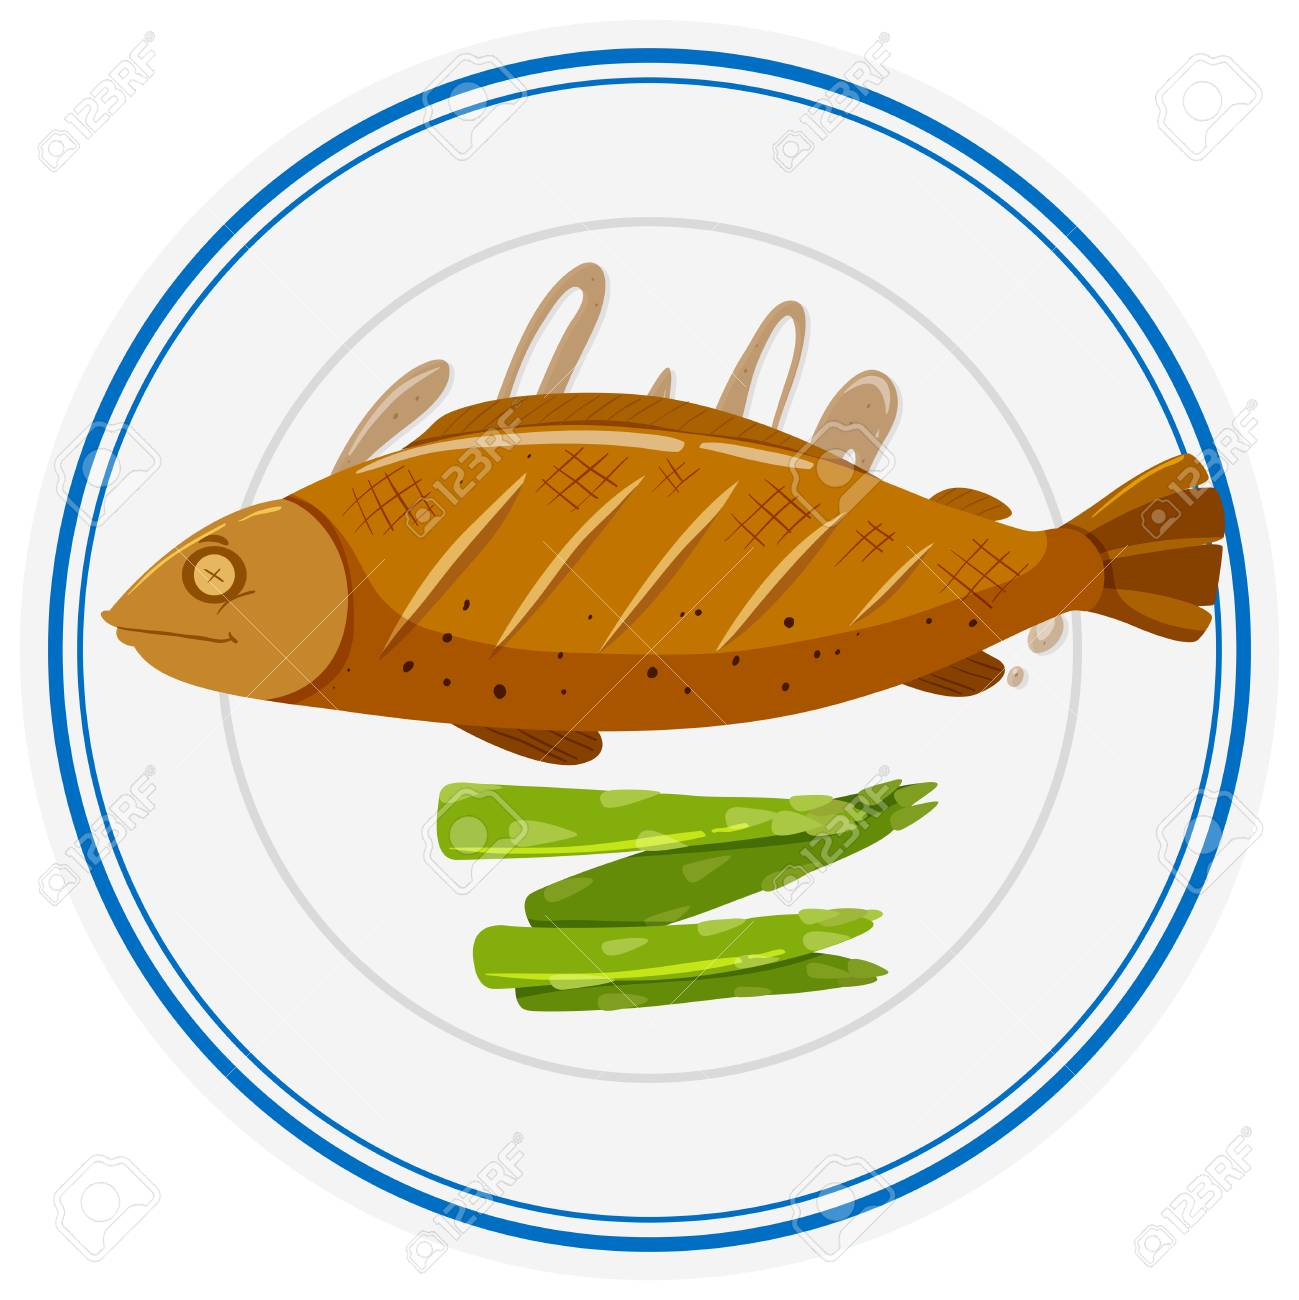 Grilled fish and asparagus on plate illustration.